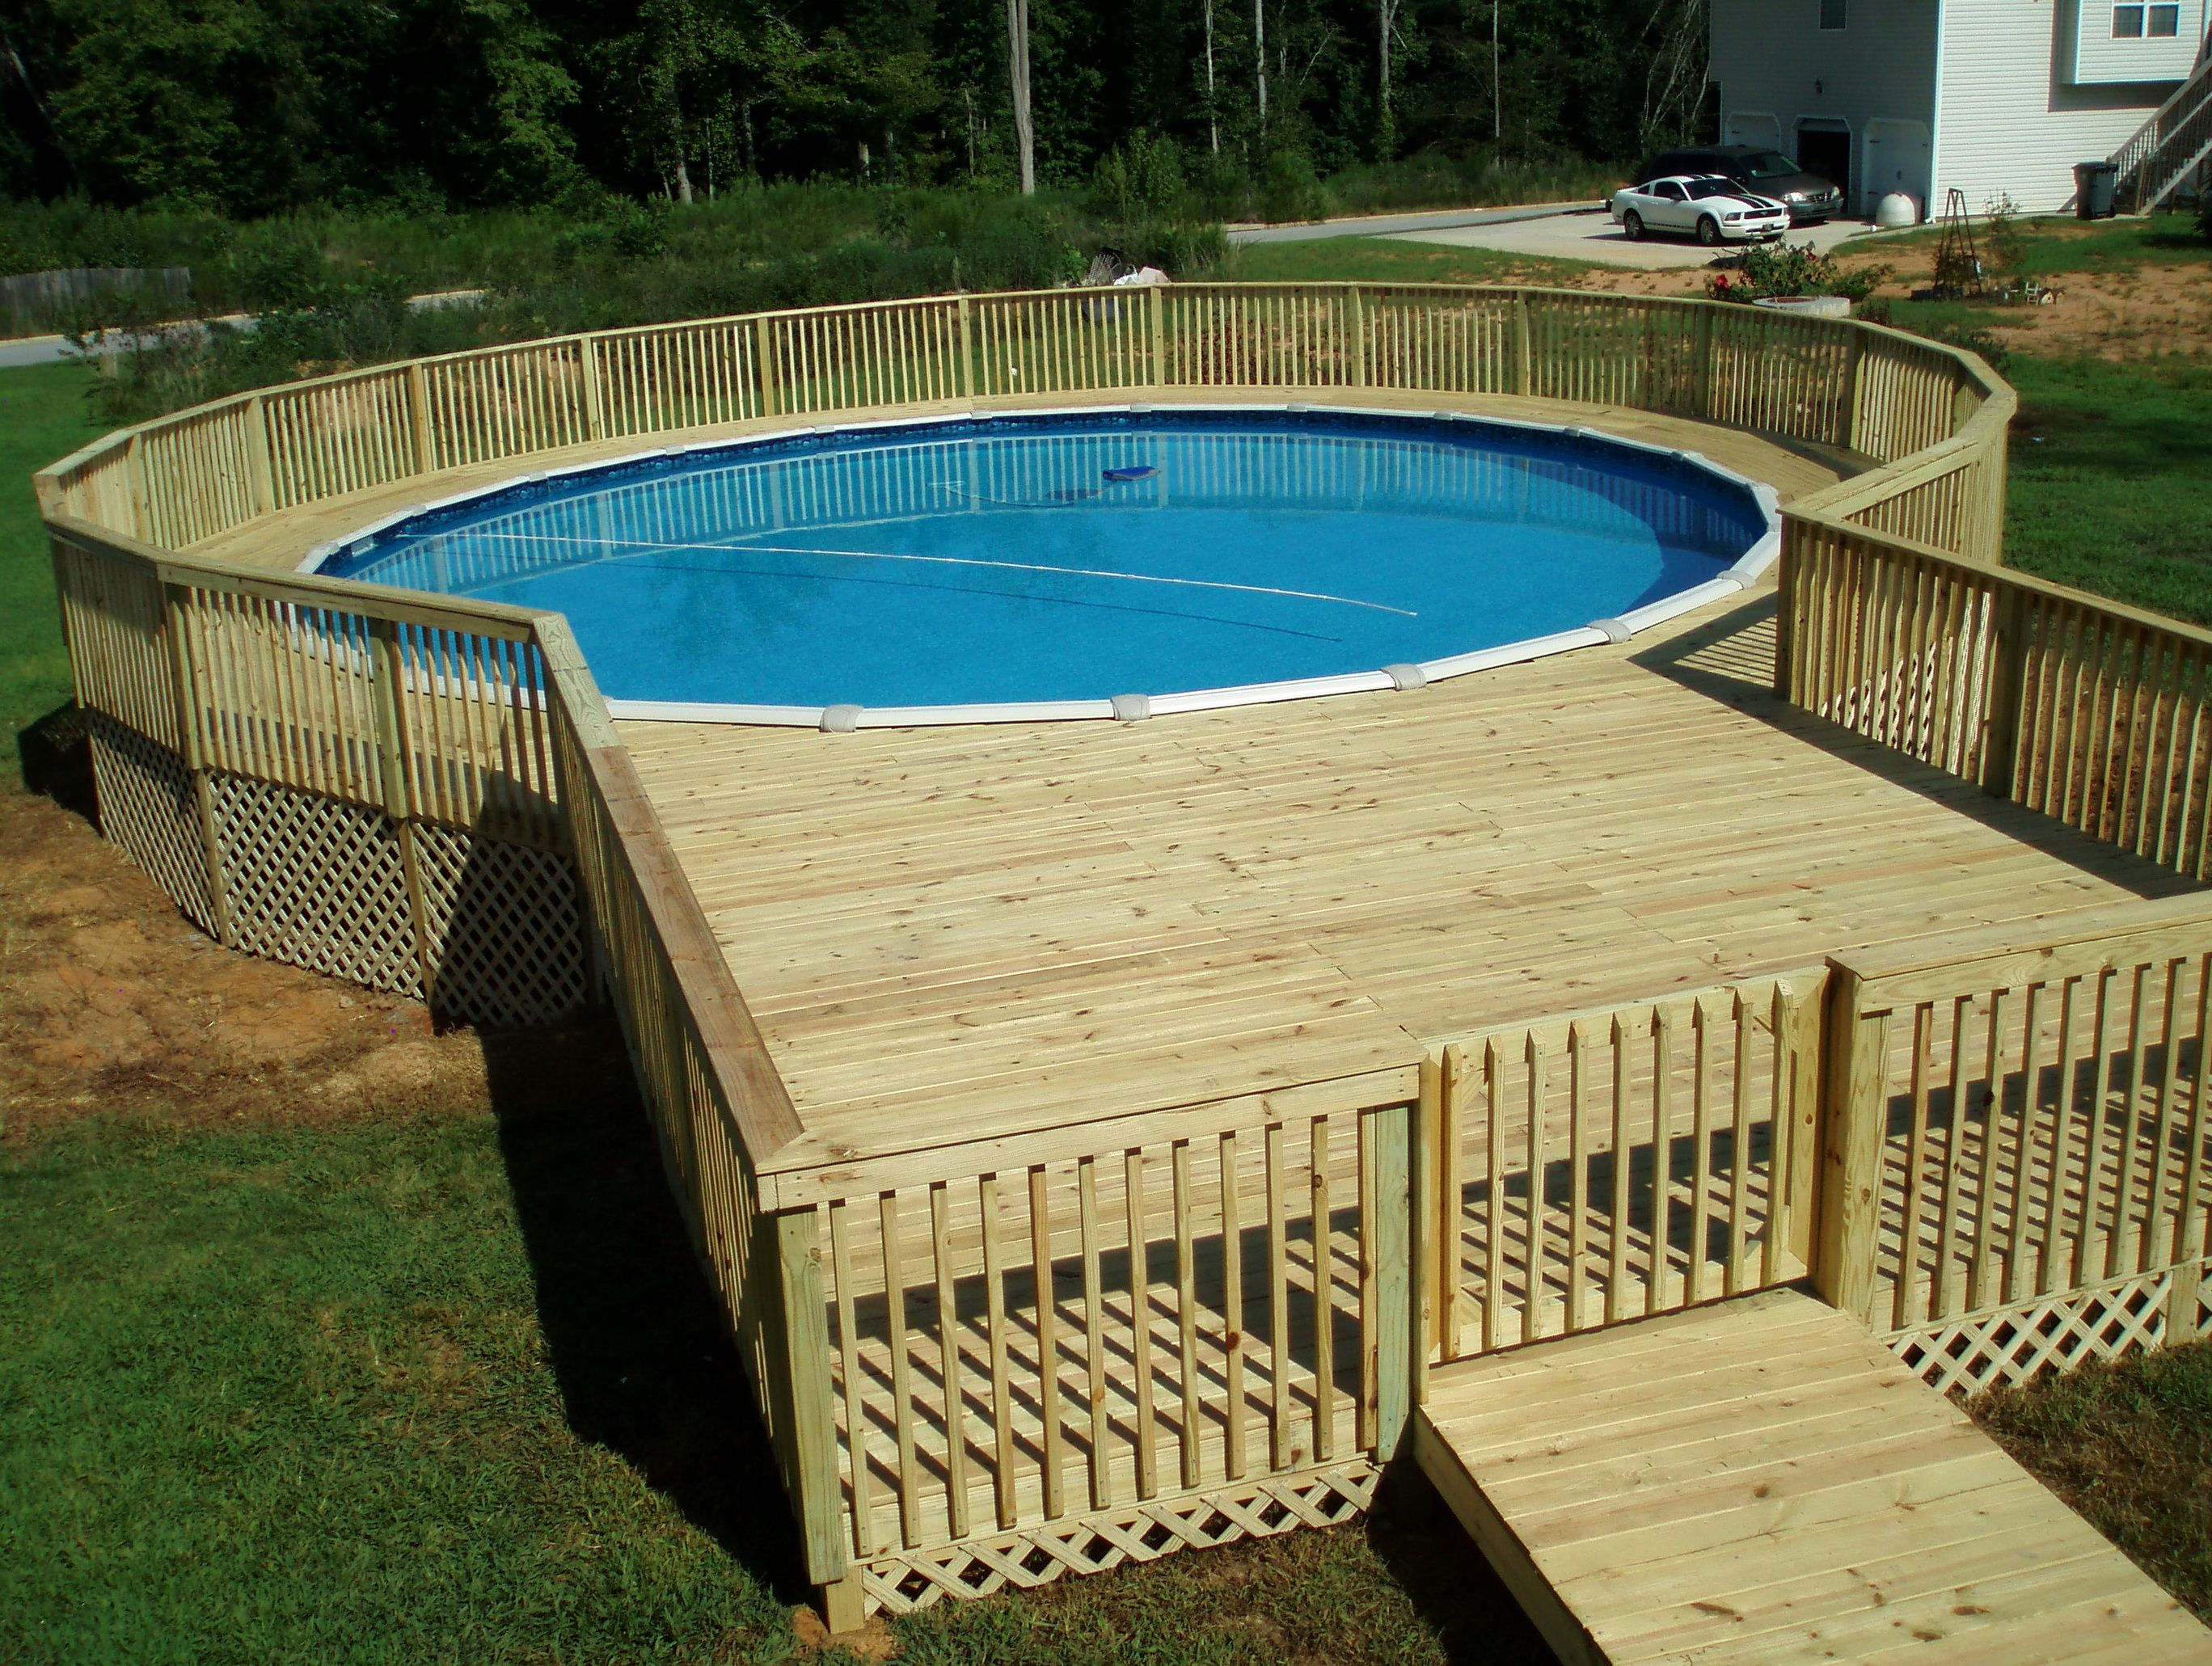 Pool Deck Plans Above Ground decks Pinterest Ground pools